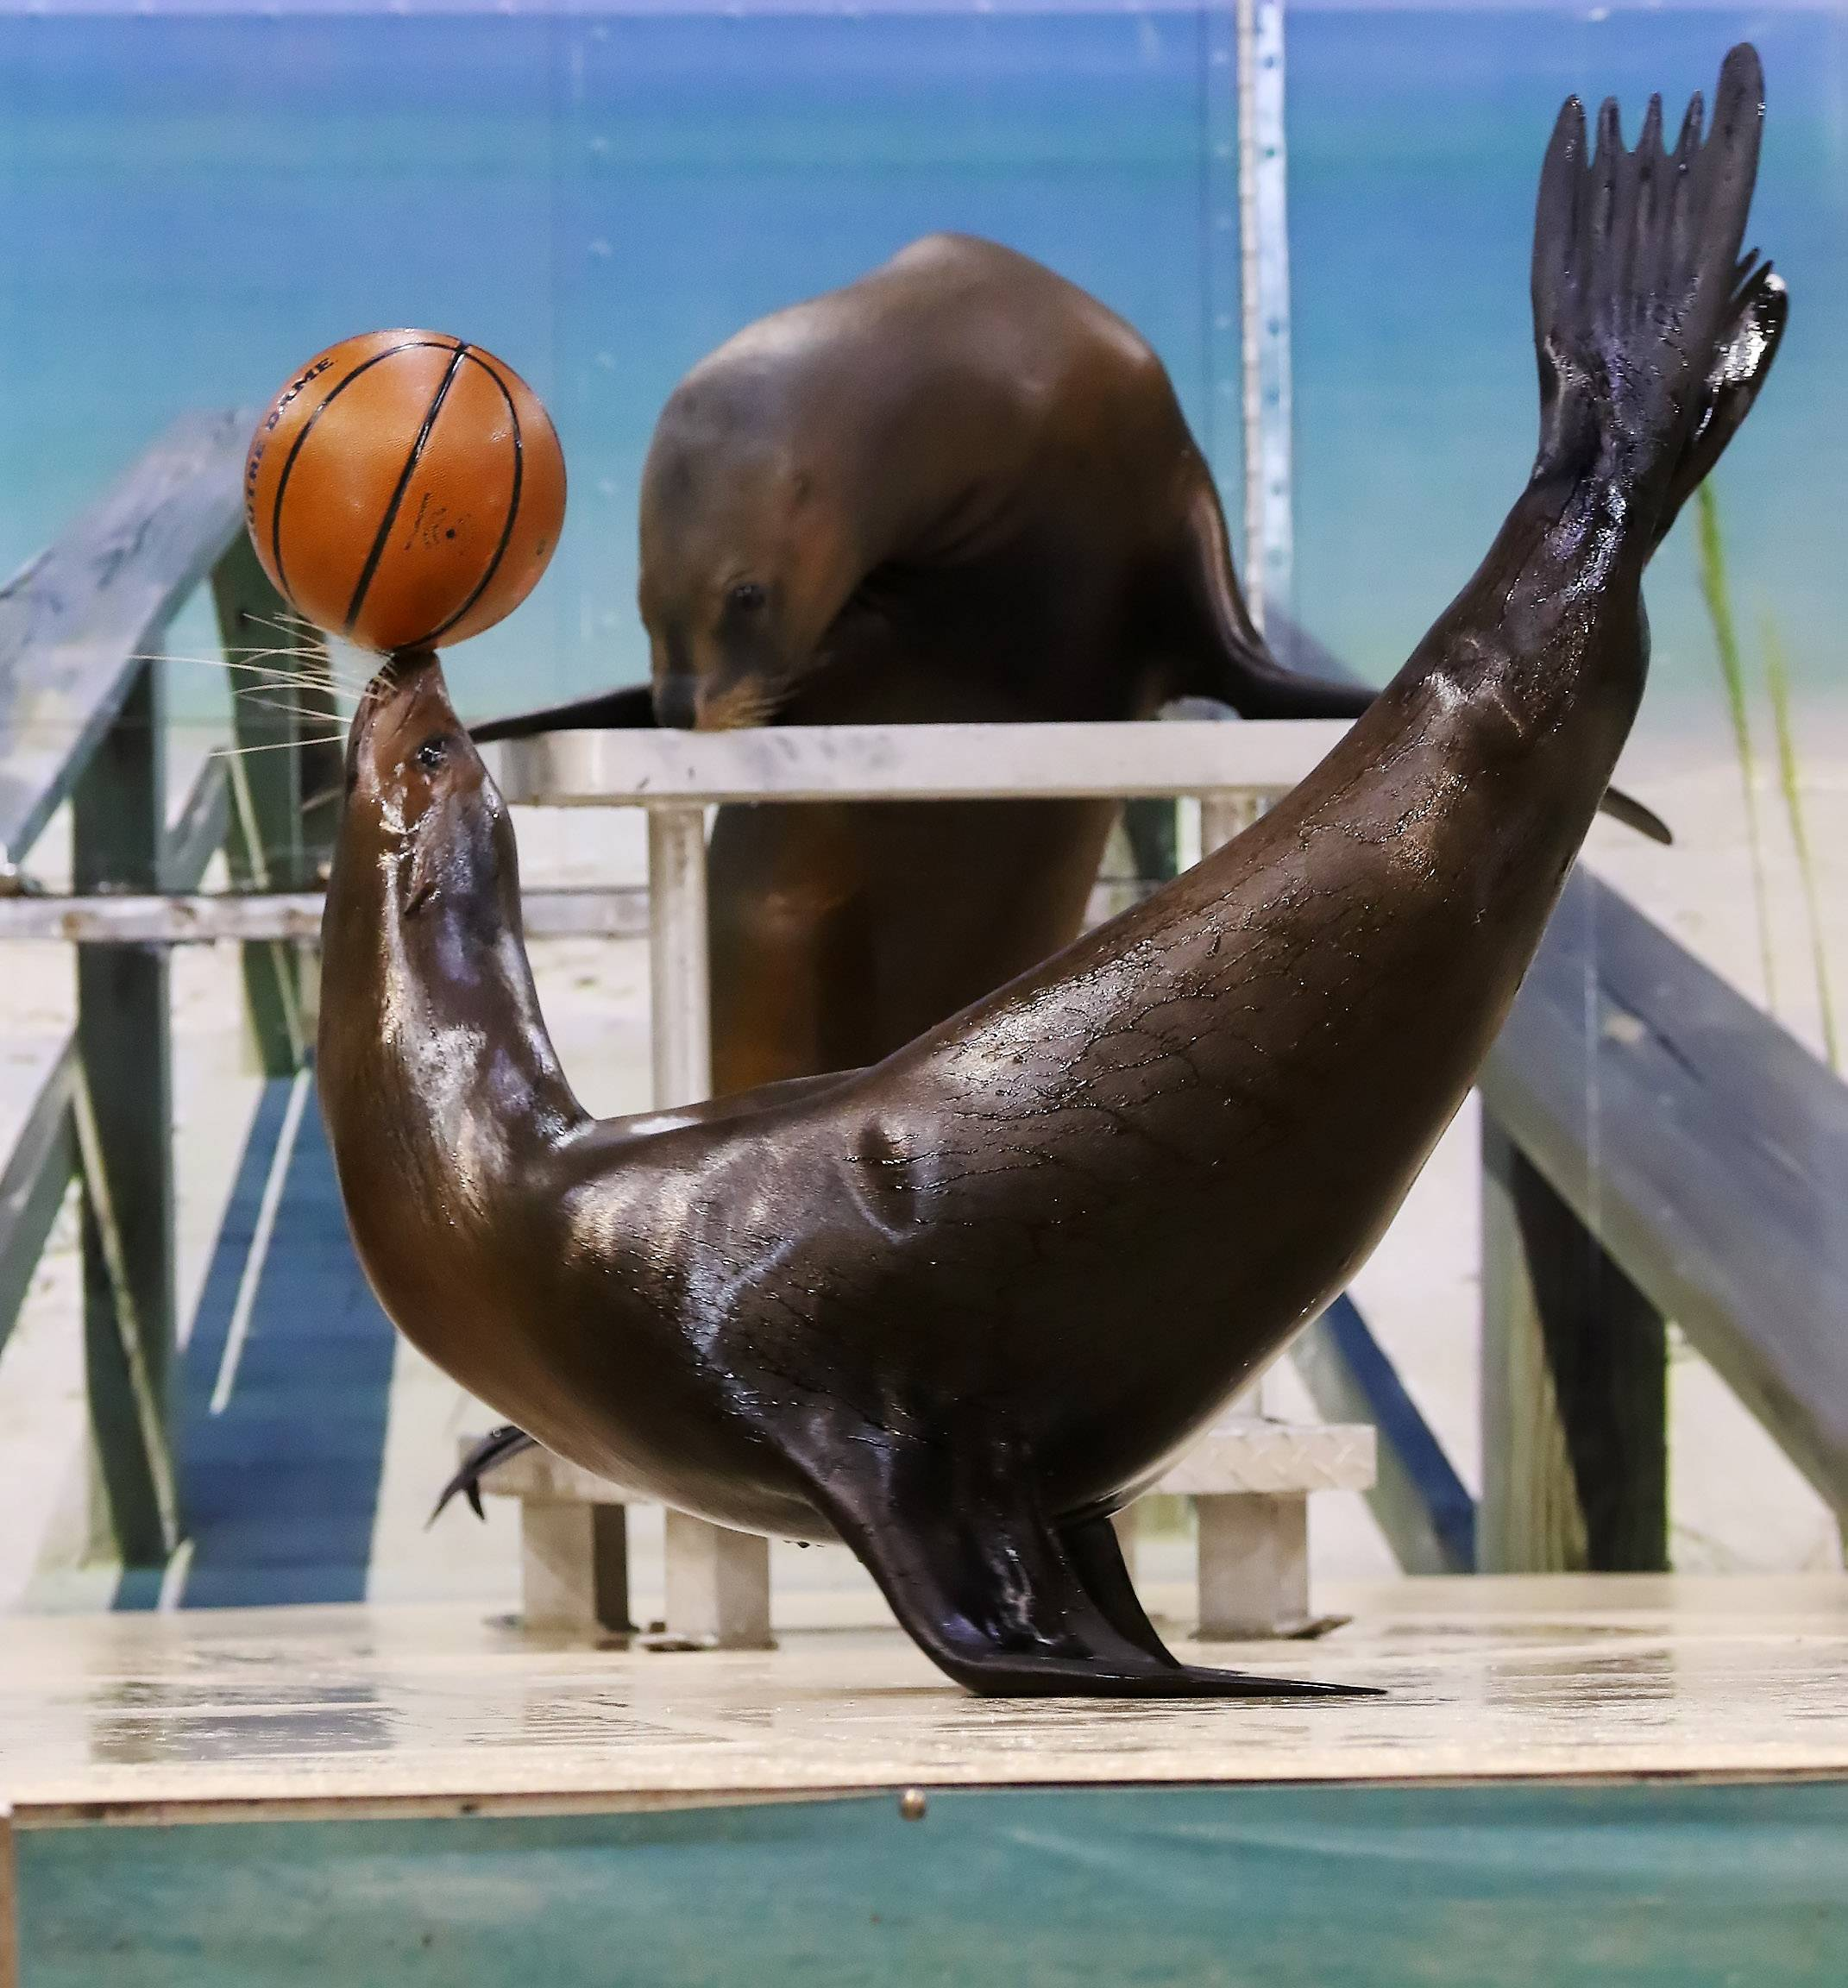 A sea lion named Zoey balances a basketball during the Sea Lion Splash show Sunday at the Aquatic Experience at Renaissance Schaumburg Convention Center.